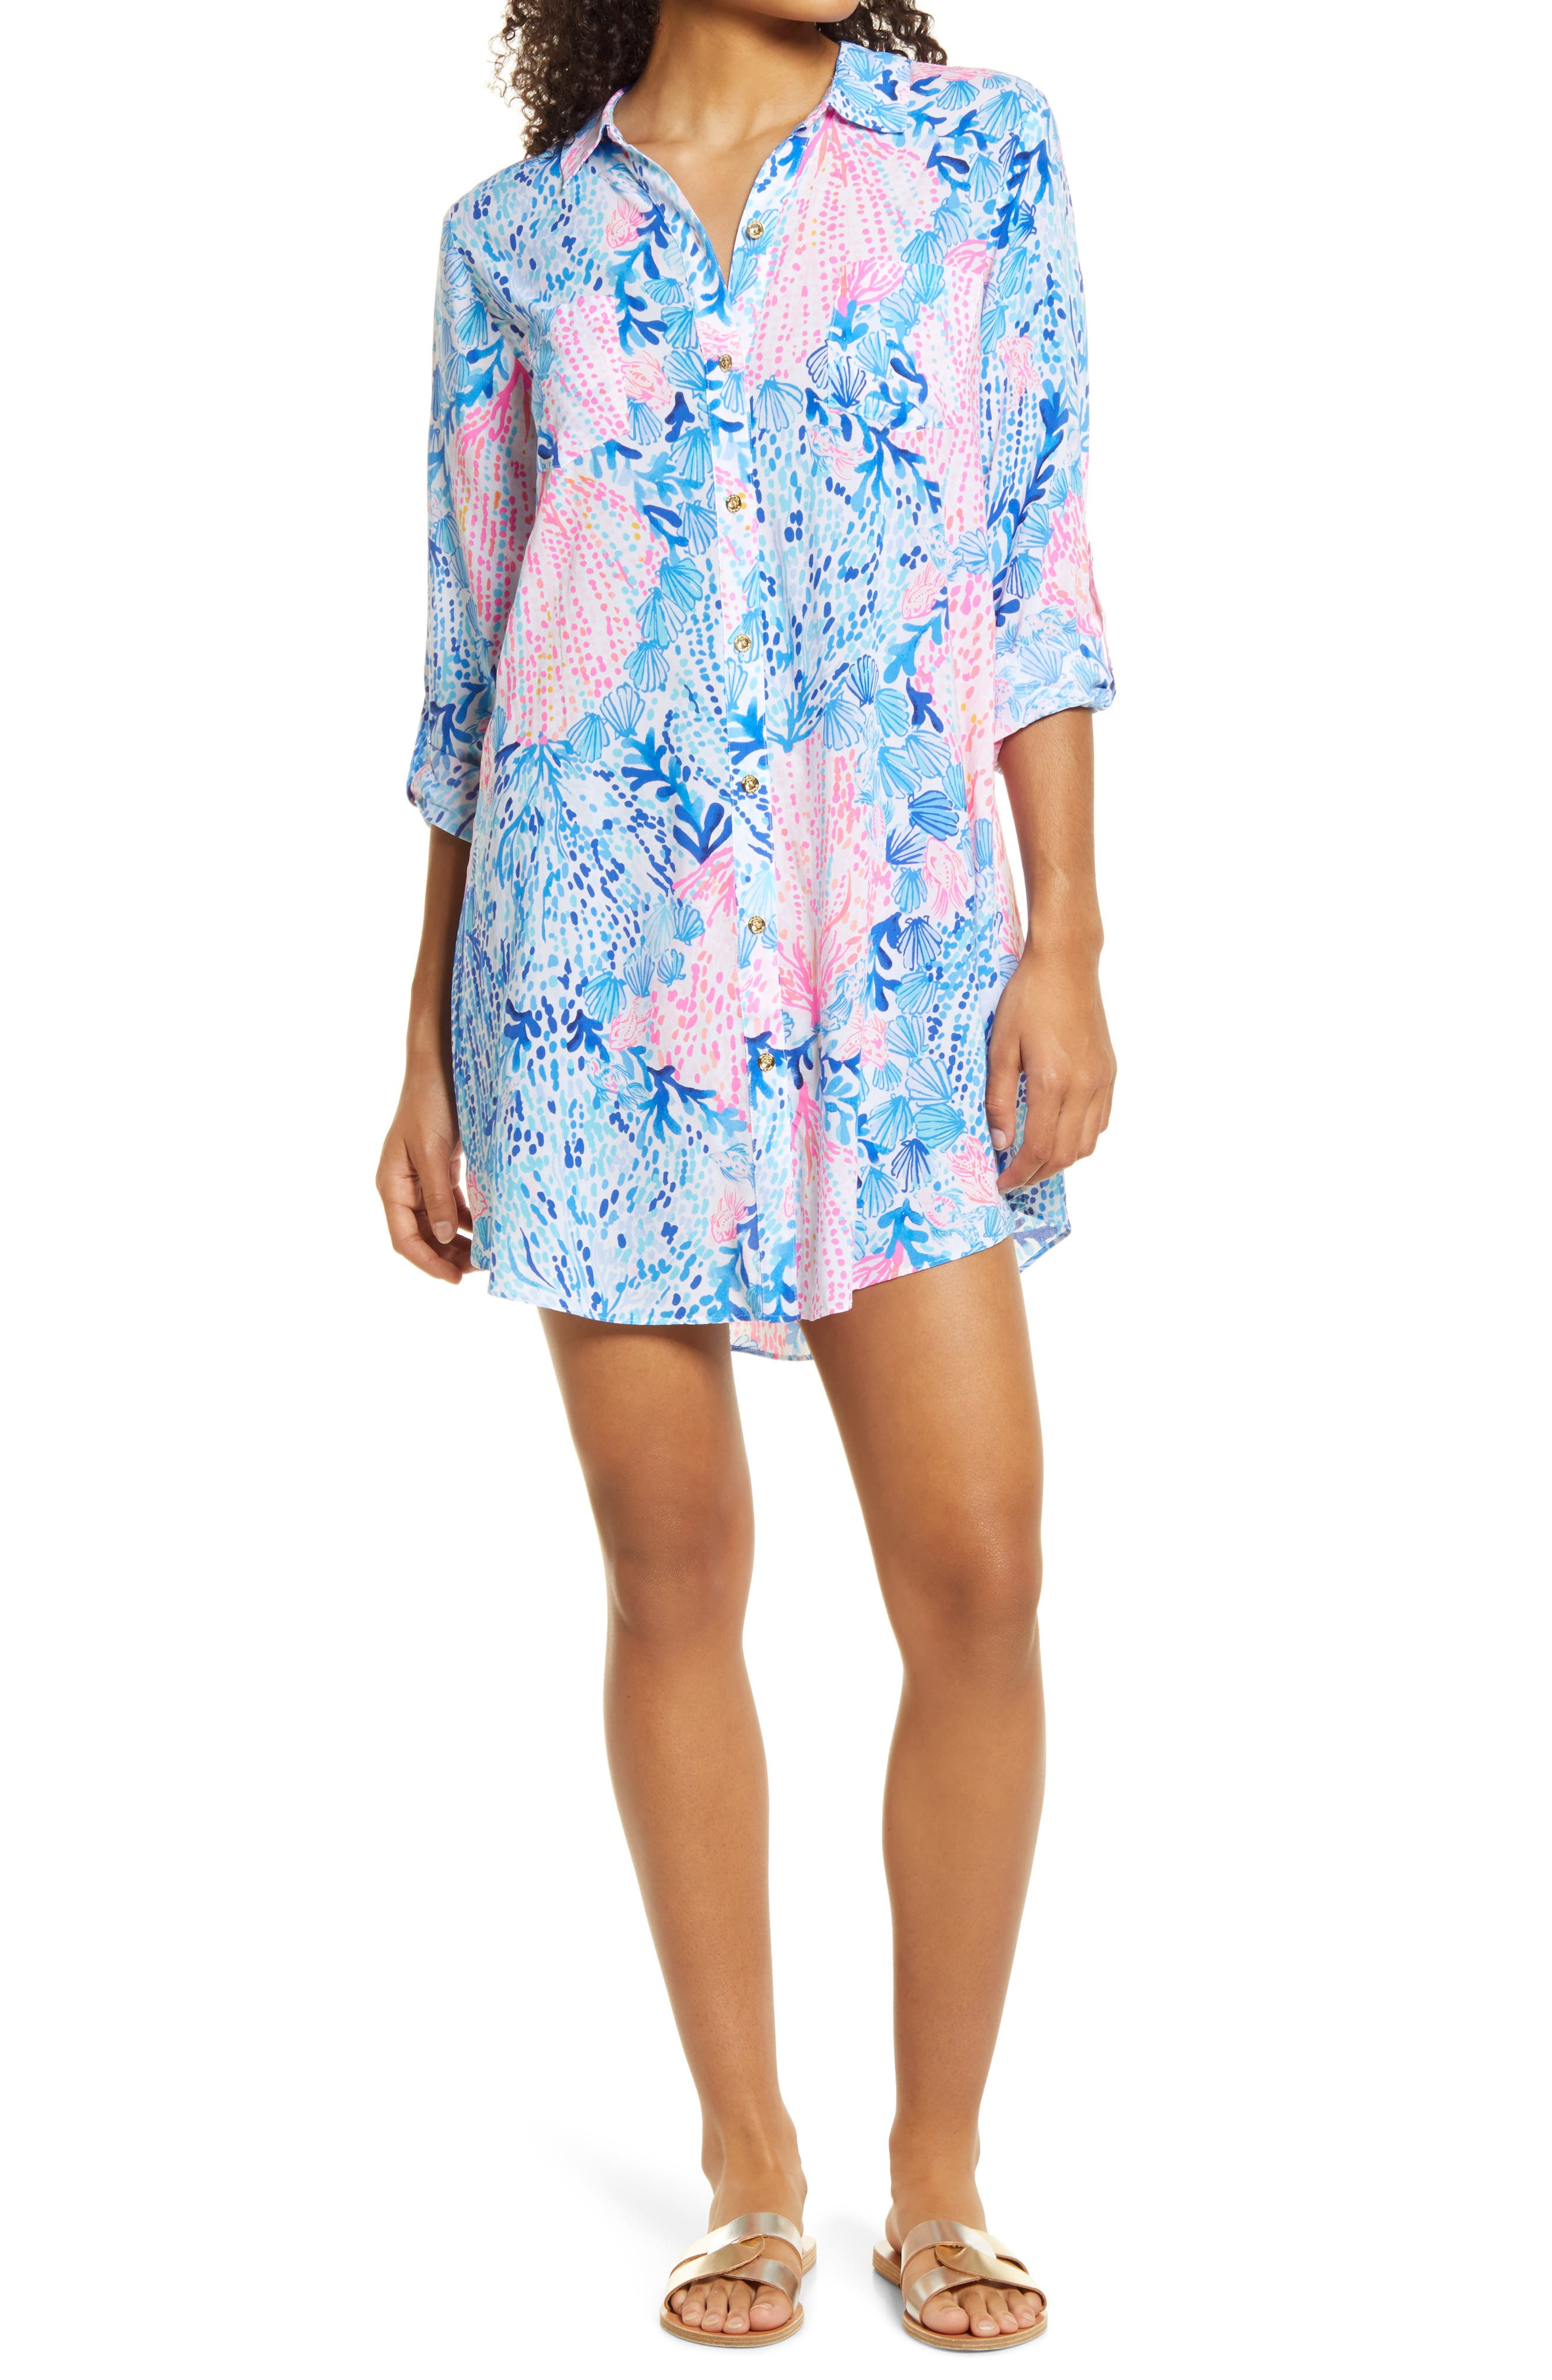 Women's Lilly Pulitzer Natalie Cover-Up Shirtdress